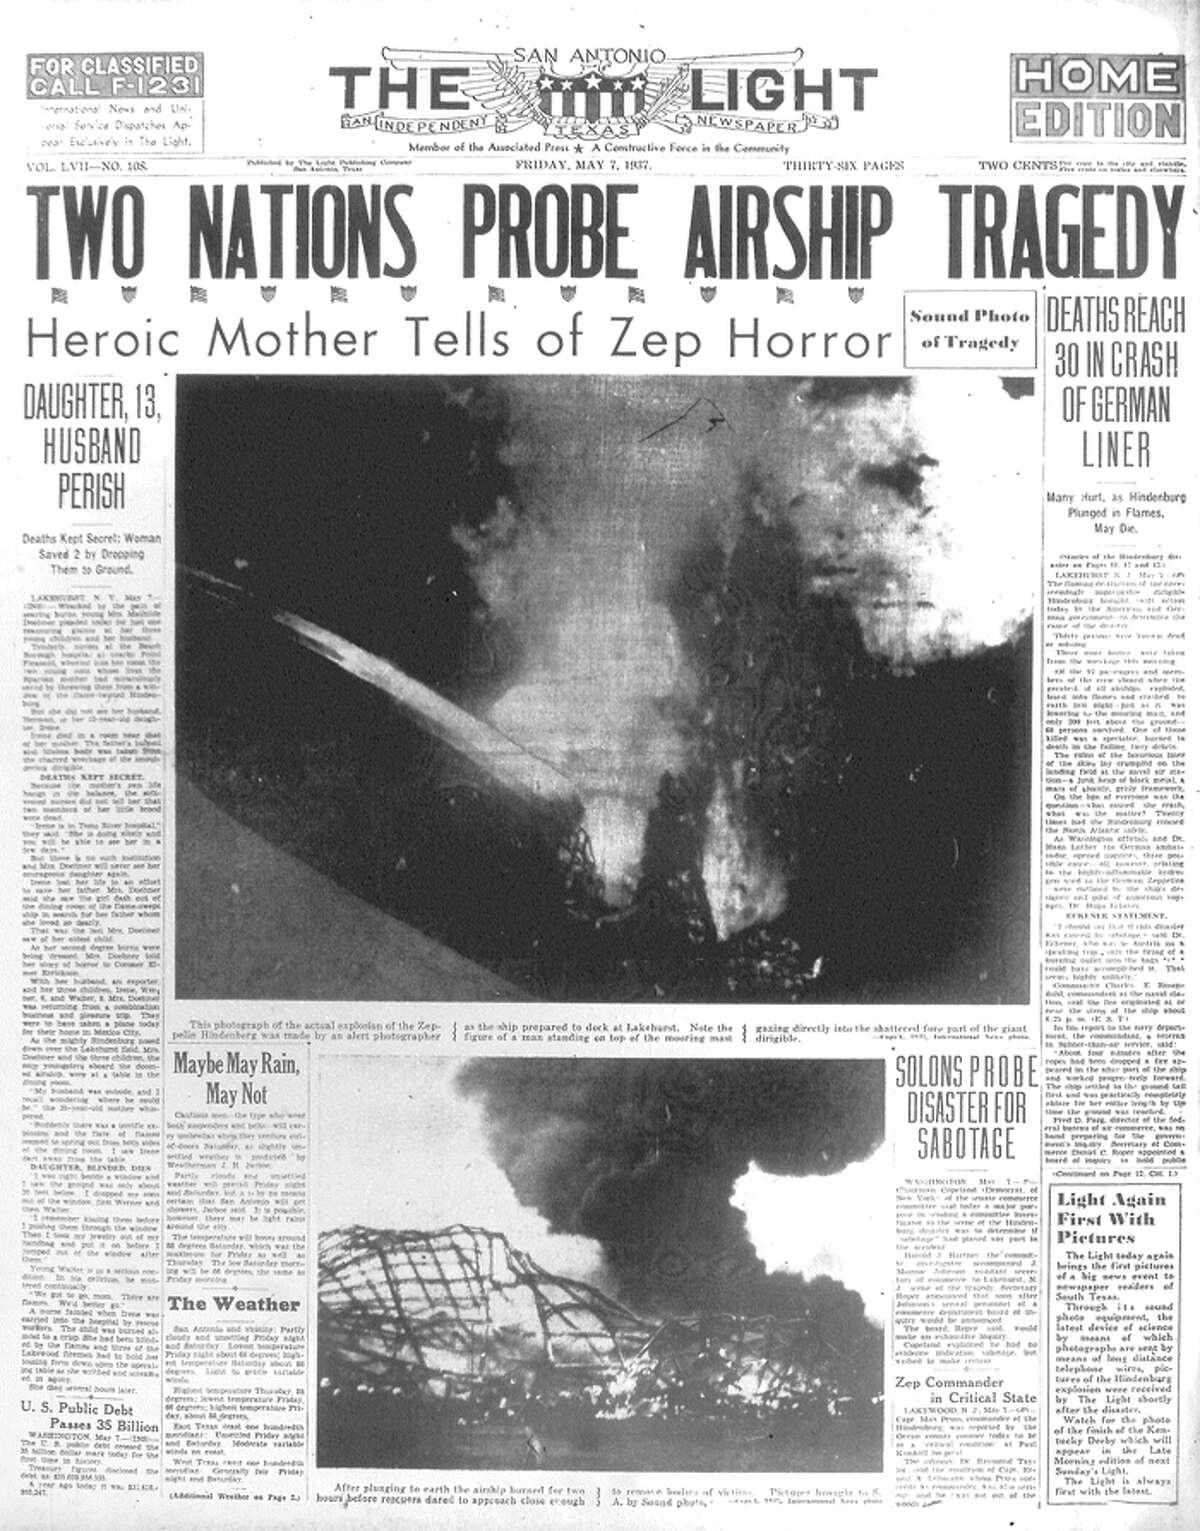 FRIDAY, MAY 7, 1937: The German airship the Hindenburg catches fire, killing 35 people. The event is caught on film, and the phrase,